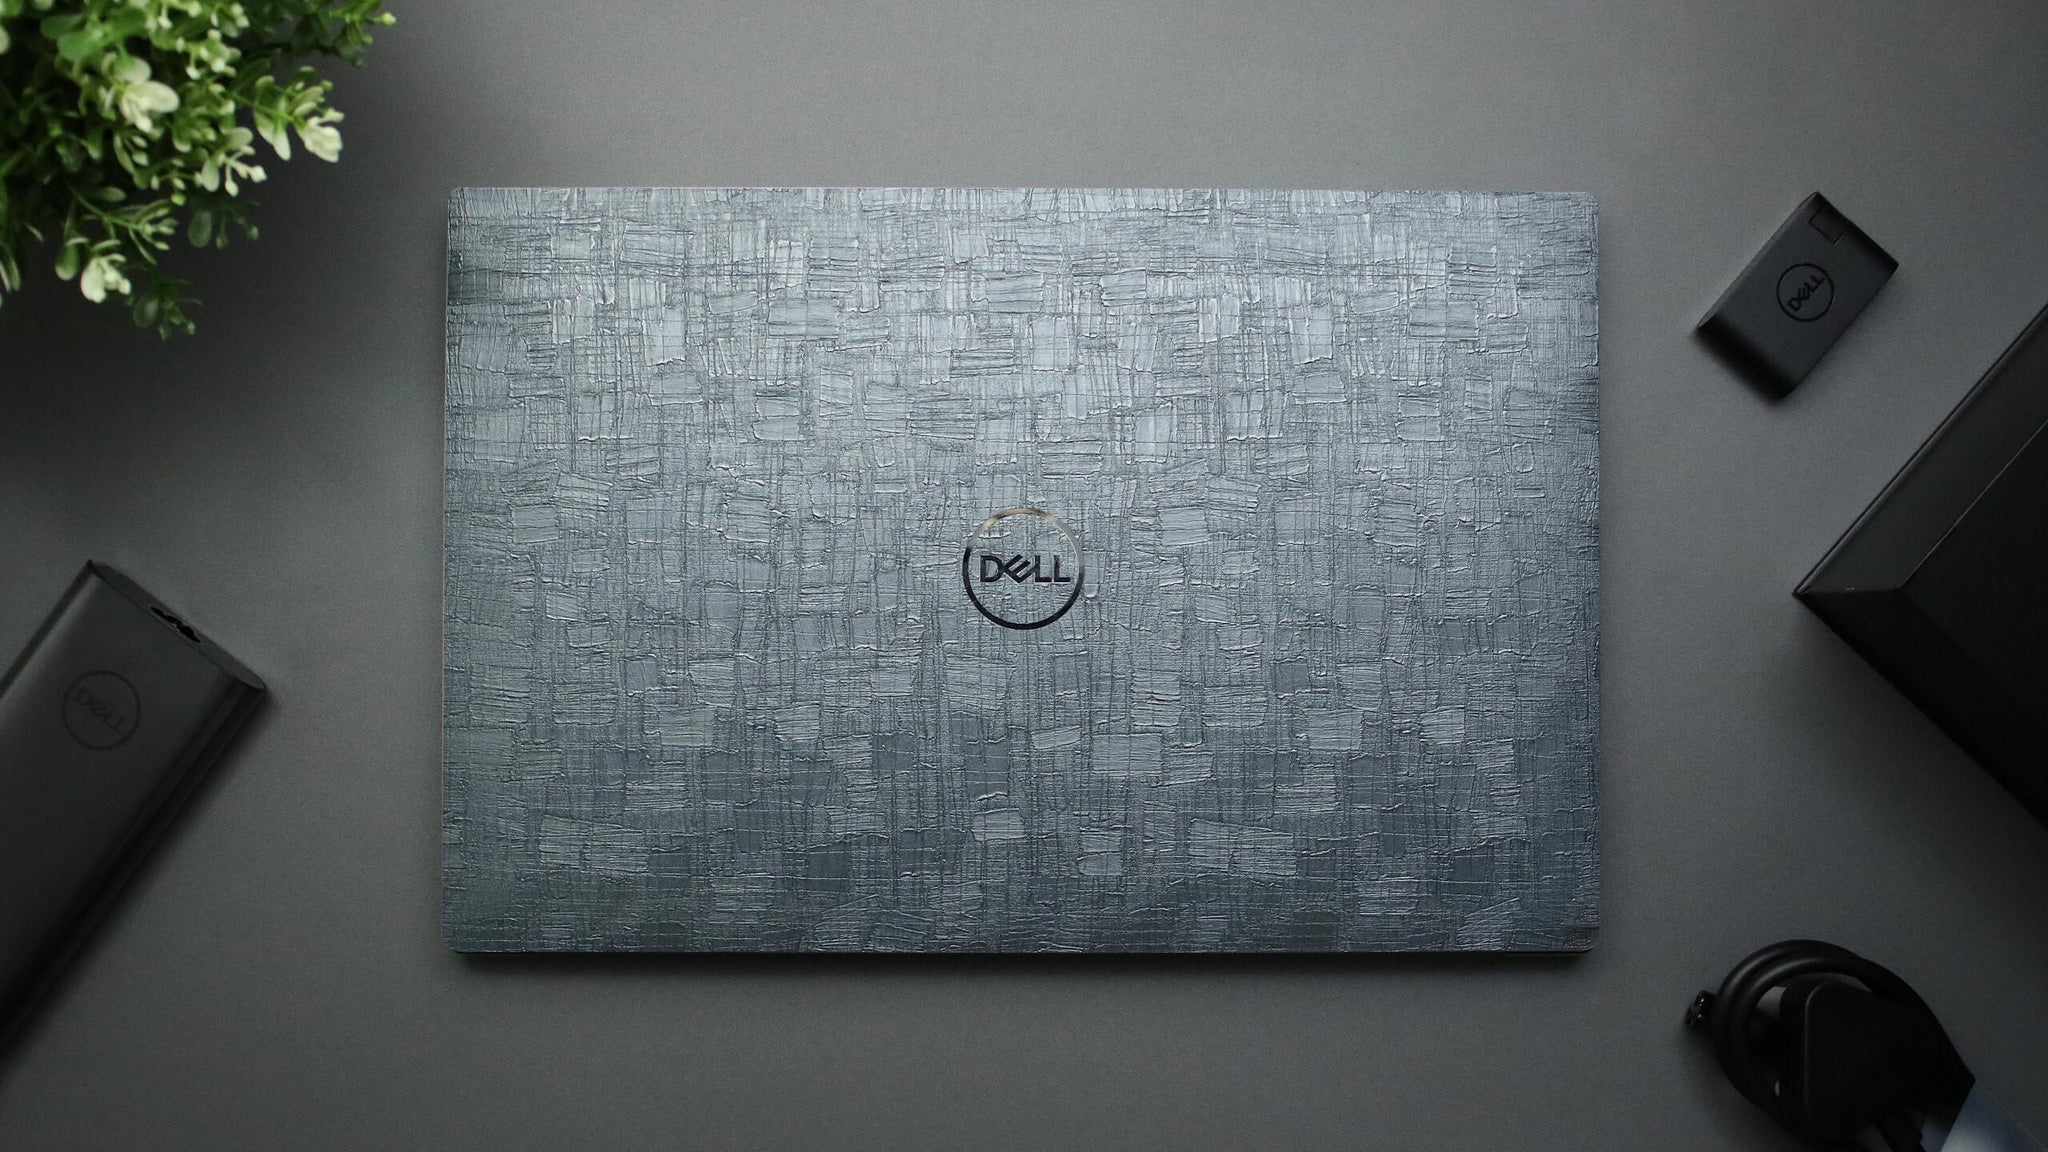 Dell XPS 17 (9700) Carved Charcoal Skins